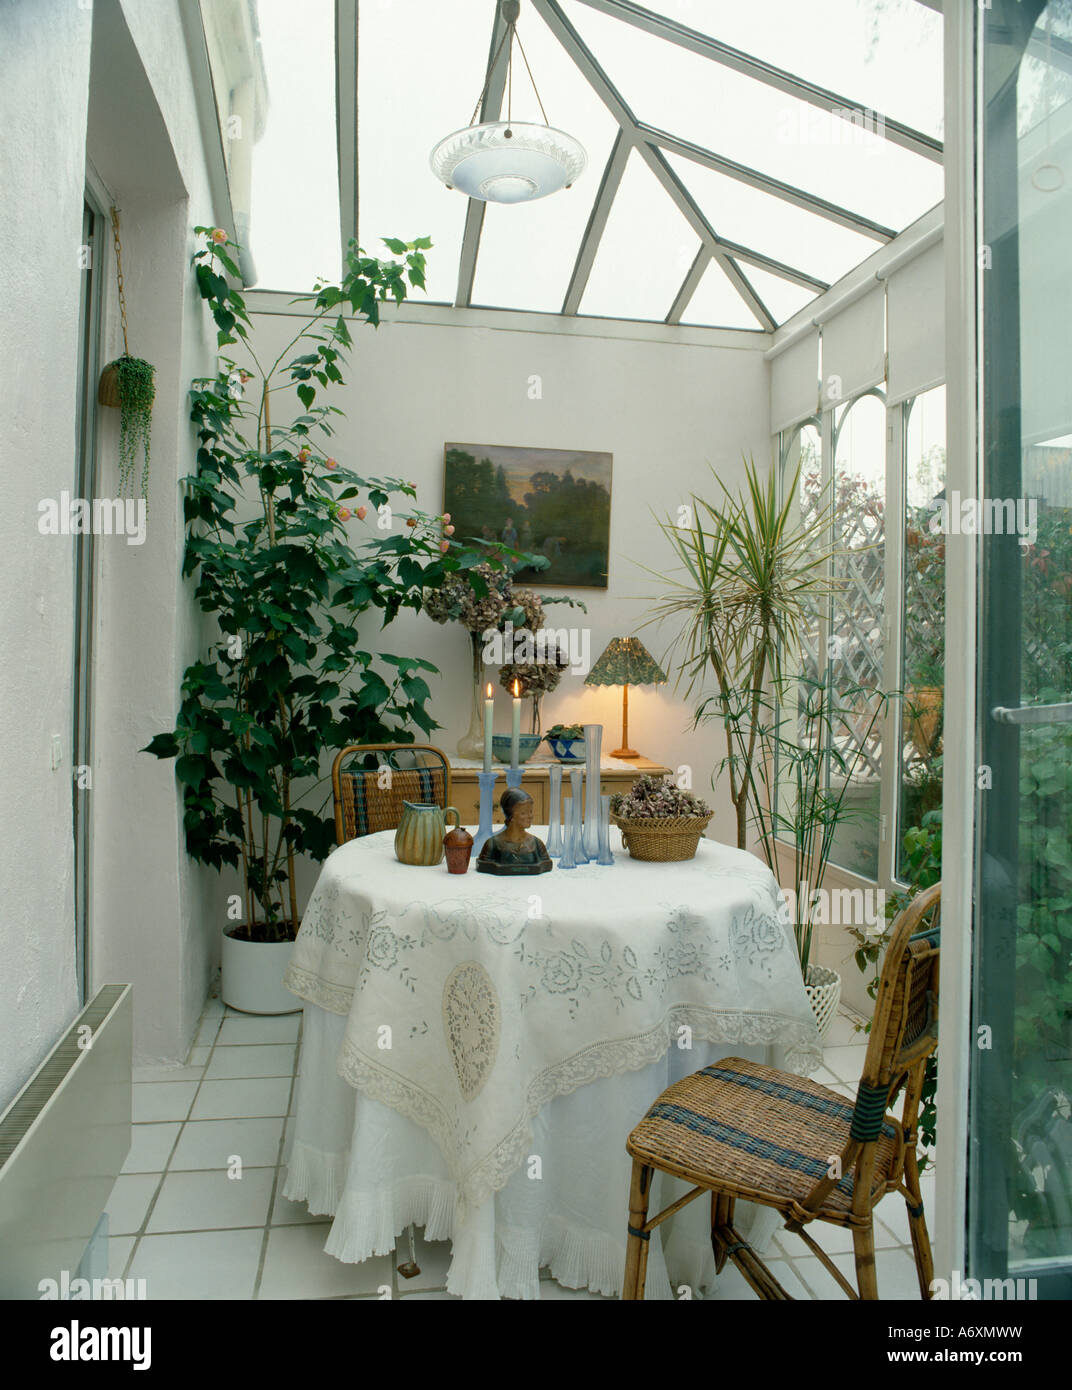 Dining Table With White Cloth In Modern Glass Conservatory Extension Tiled Floor And Large Houseplants